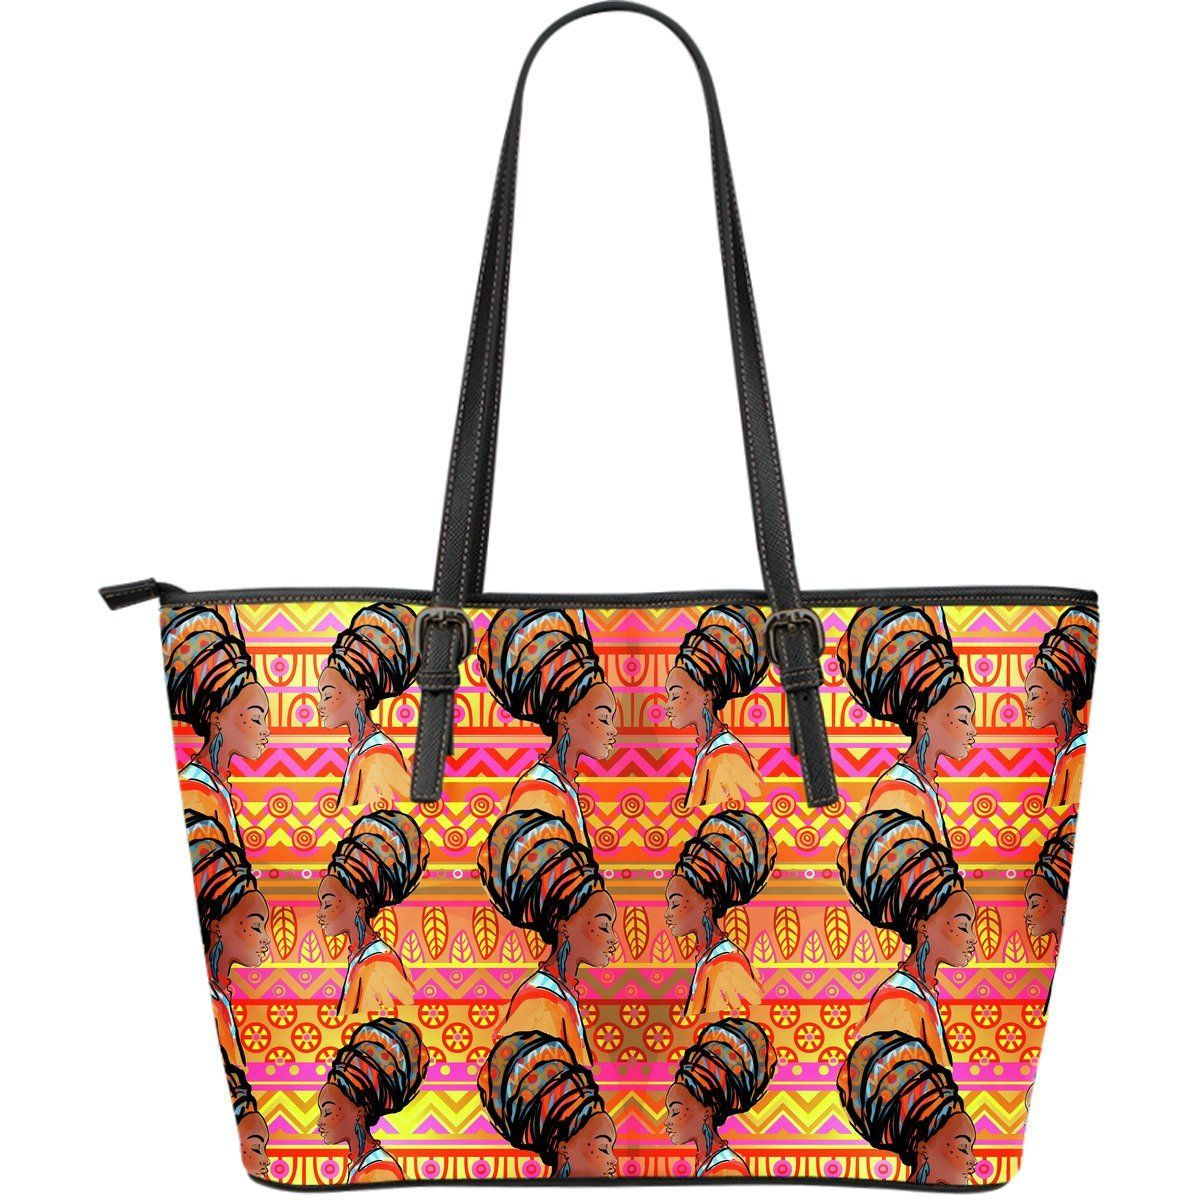 African Girl Aztec Large Leather Tote Bag #aztec